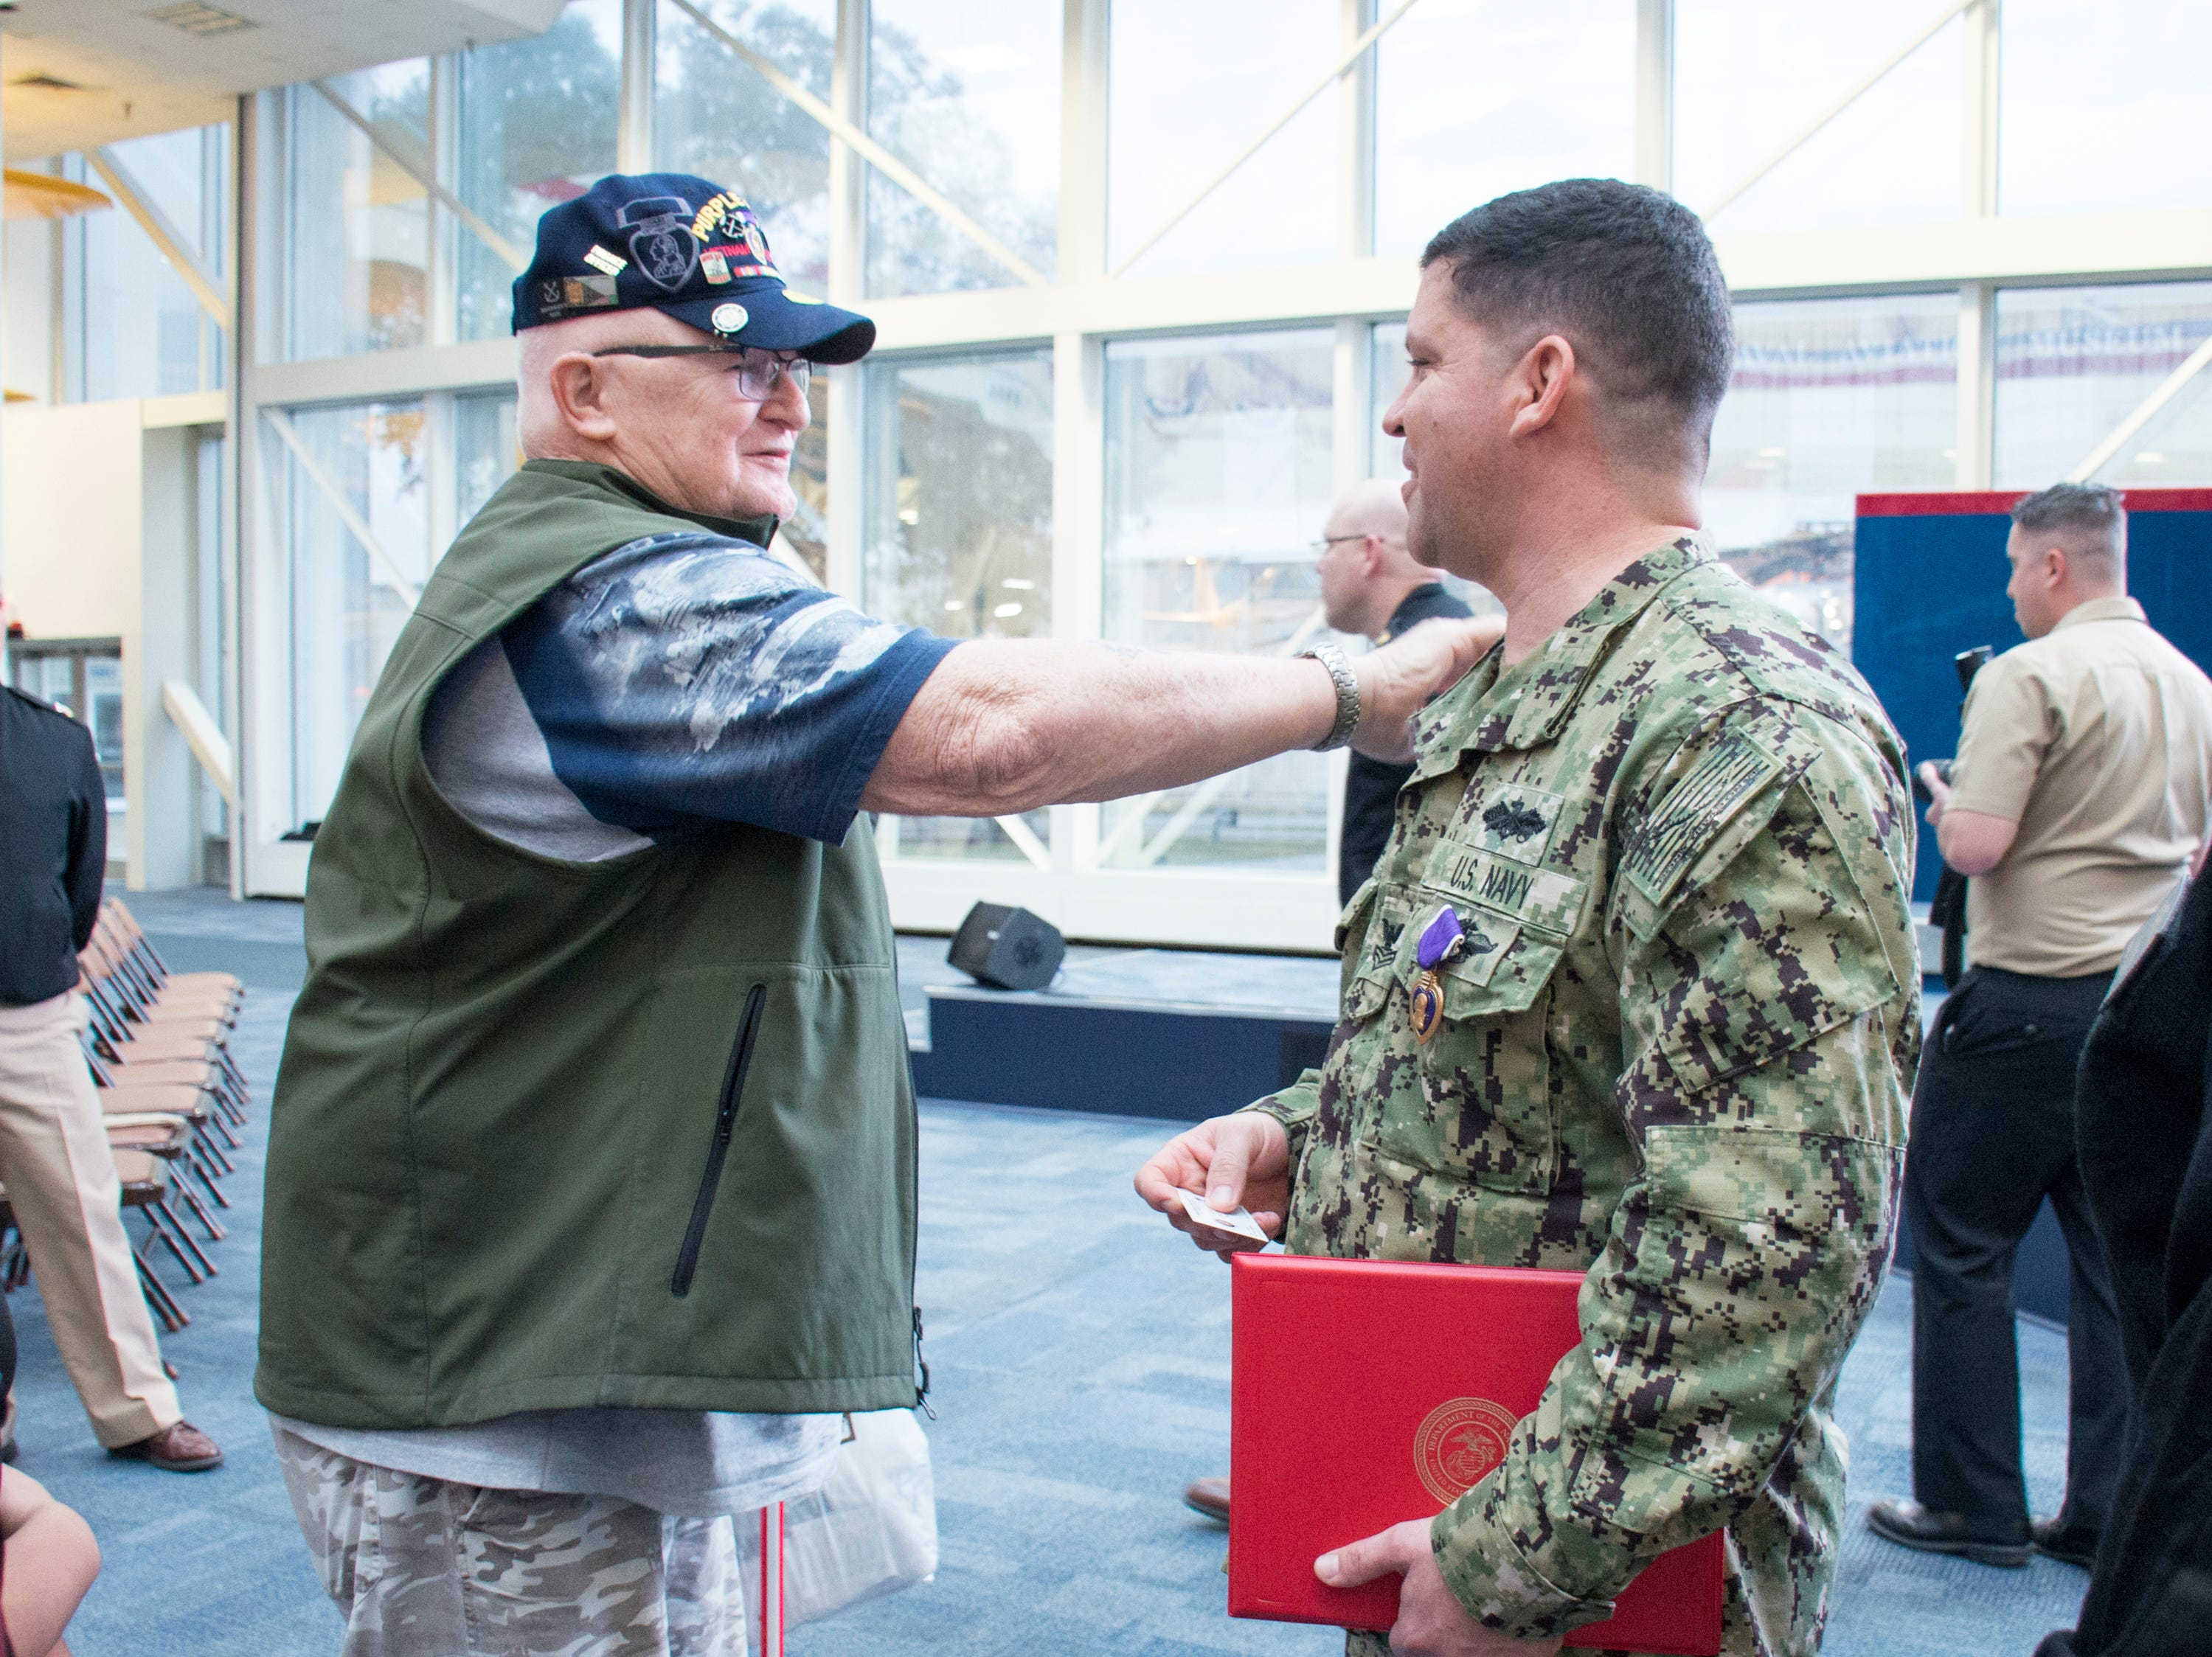 Fellow Purple Heart recipient and Navy veteran Dale Prescott, left, greets Navy Hospital Corpsman 1st Class Eduardo Sanchez-Padilla after he was awarded the Purple Heart during a ceremony at the National Naval Aviation Museum in Pensacola on Wednesday, January 23, 2019.  Sanchez-Padilla was wounded in Afghanistan in 2009.  Prescott was injured in 1967.